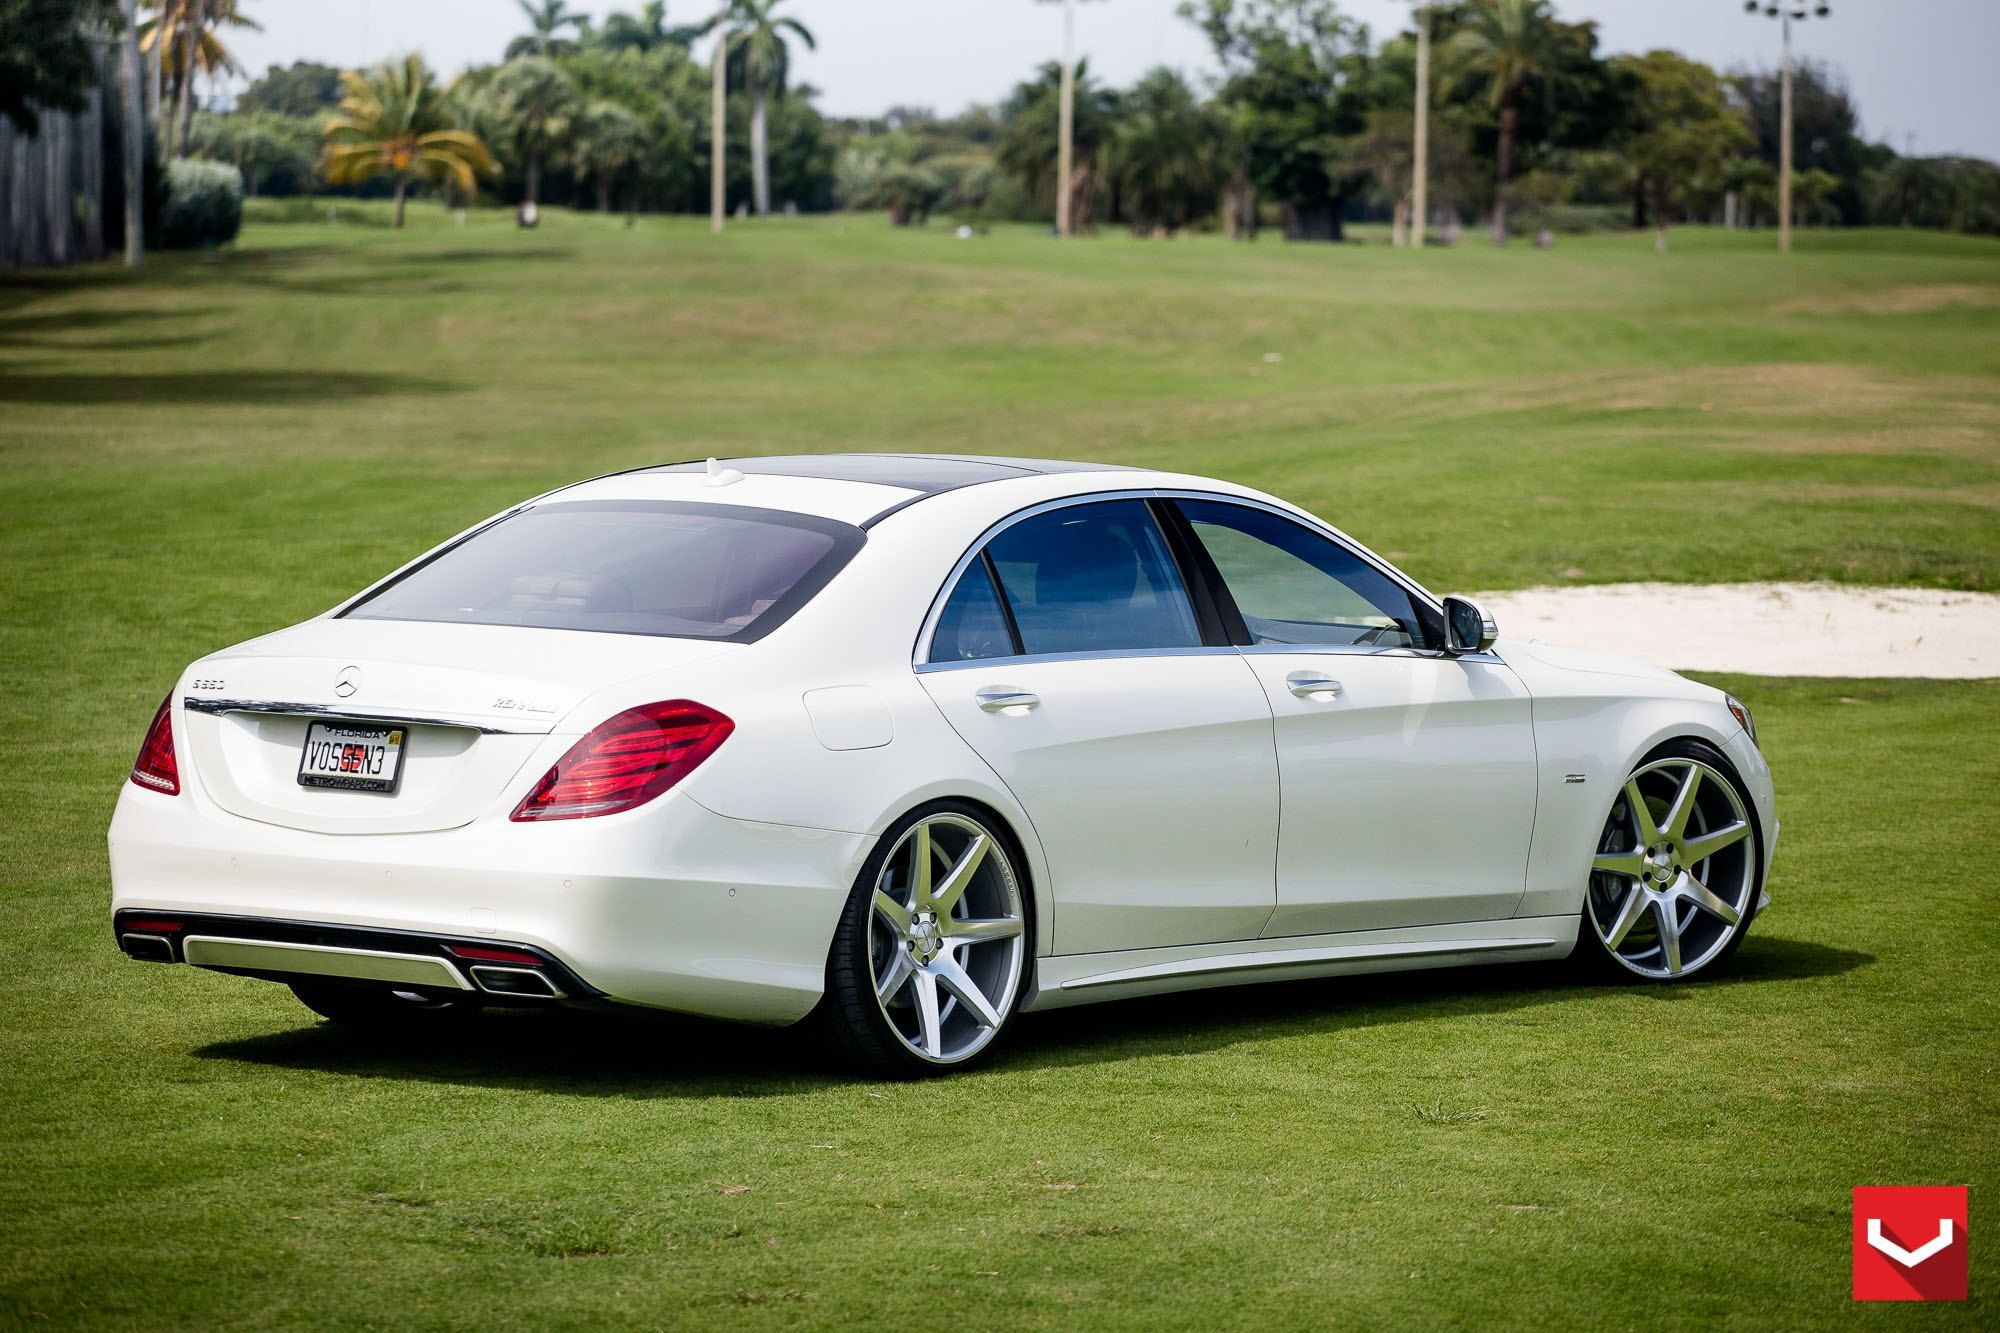 High end white mercedes s class with aftermarket parts